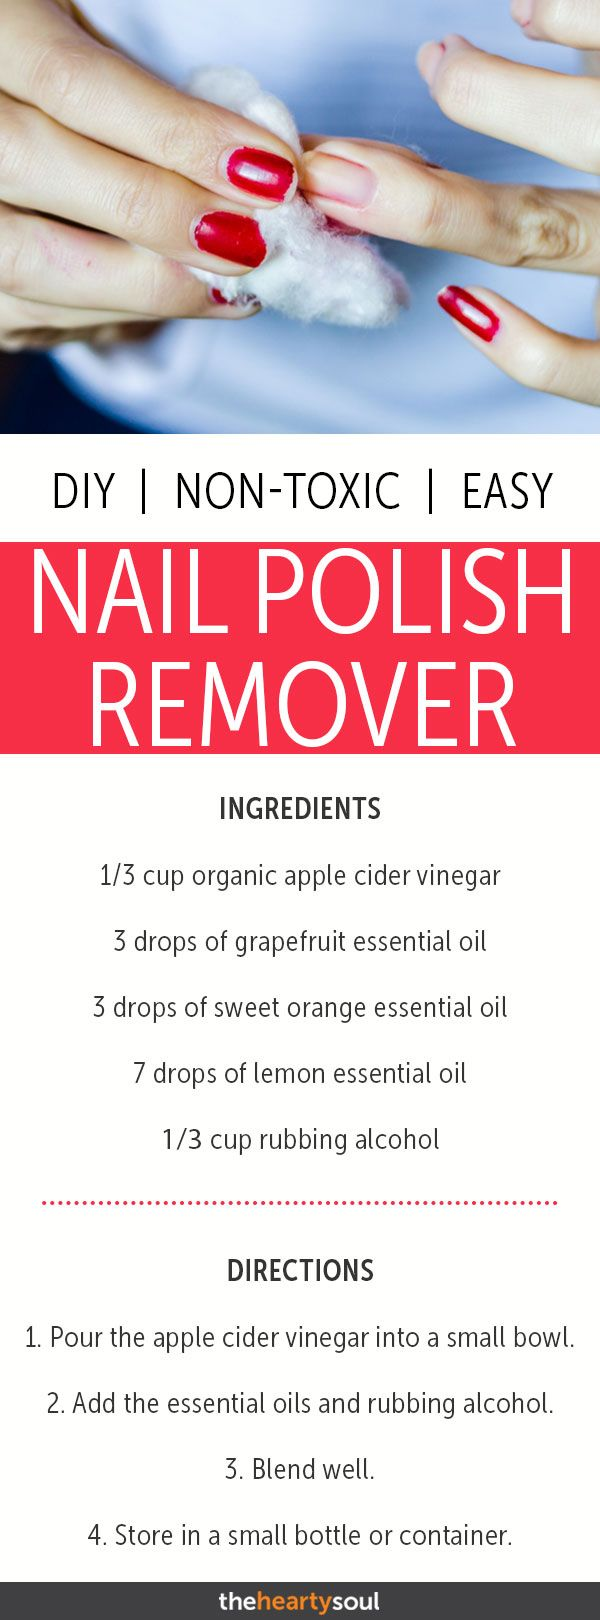 How to Make Non-Toxic Nail Polish Remover with Grapefruit, Orange, and Lemon Oils